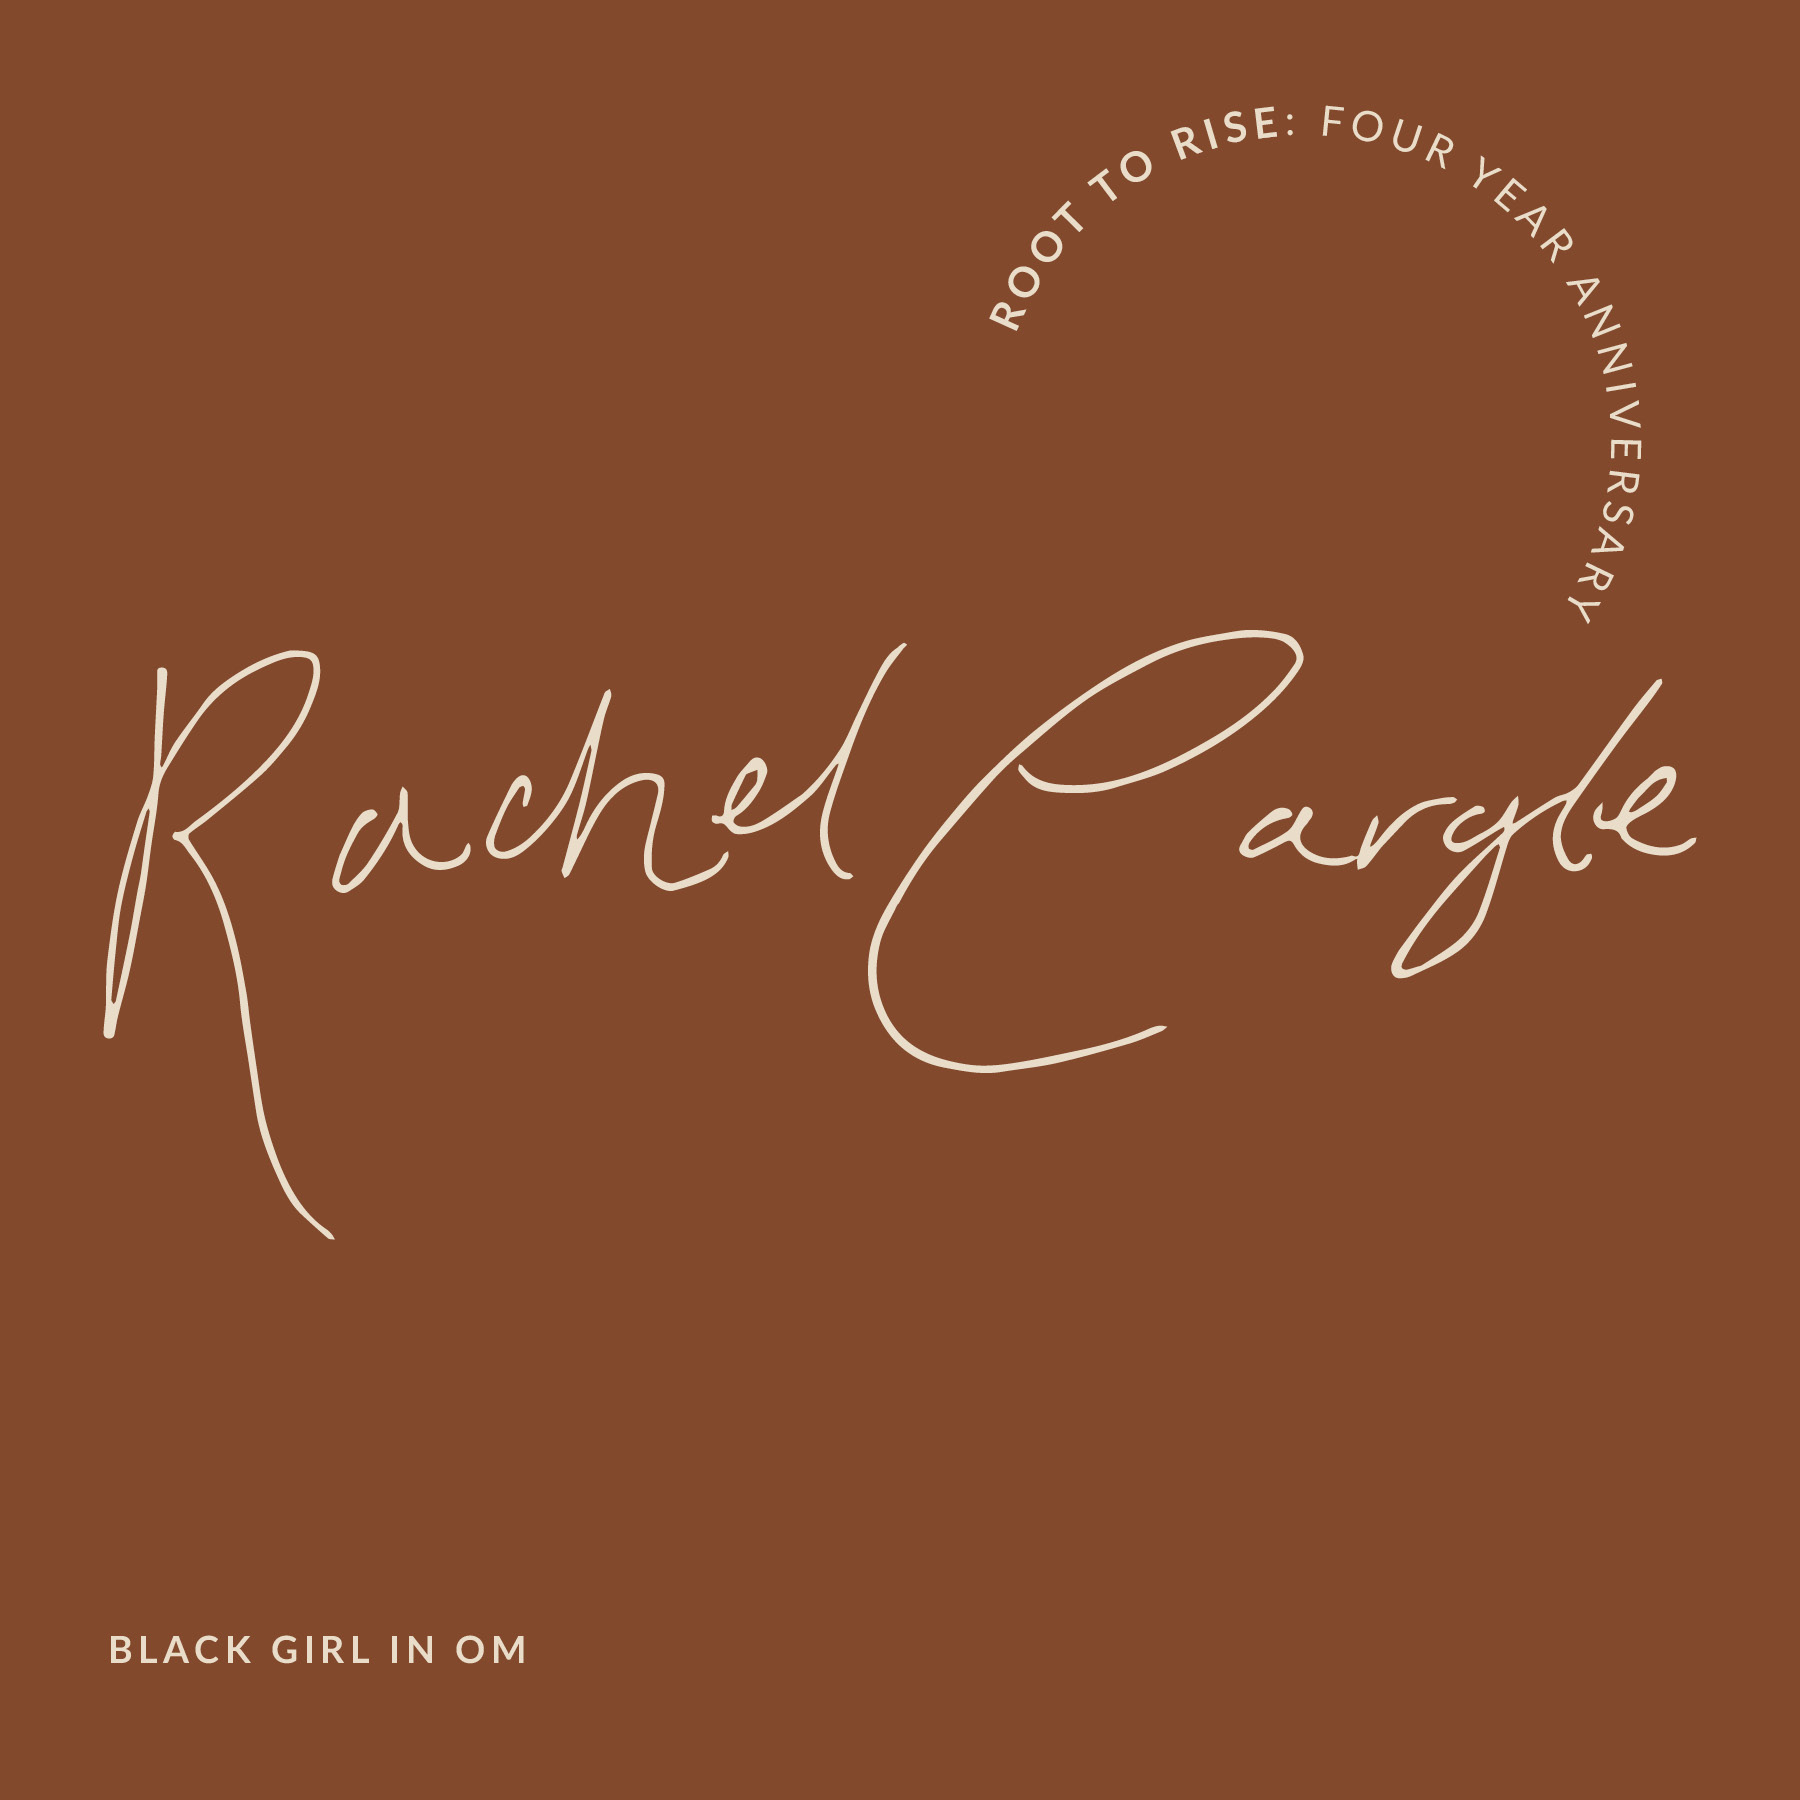 Rachel Cargle Root to Rise Name.jpg